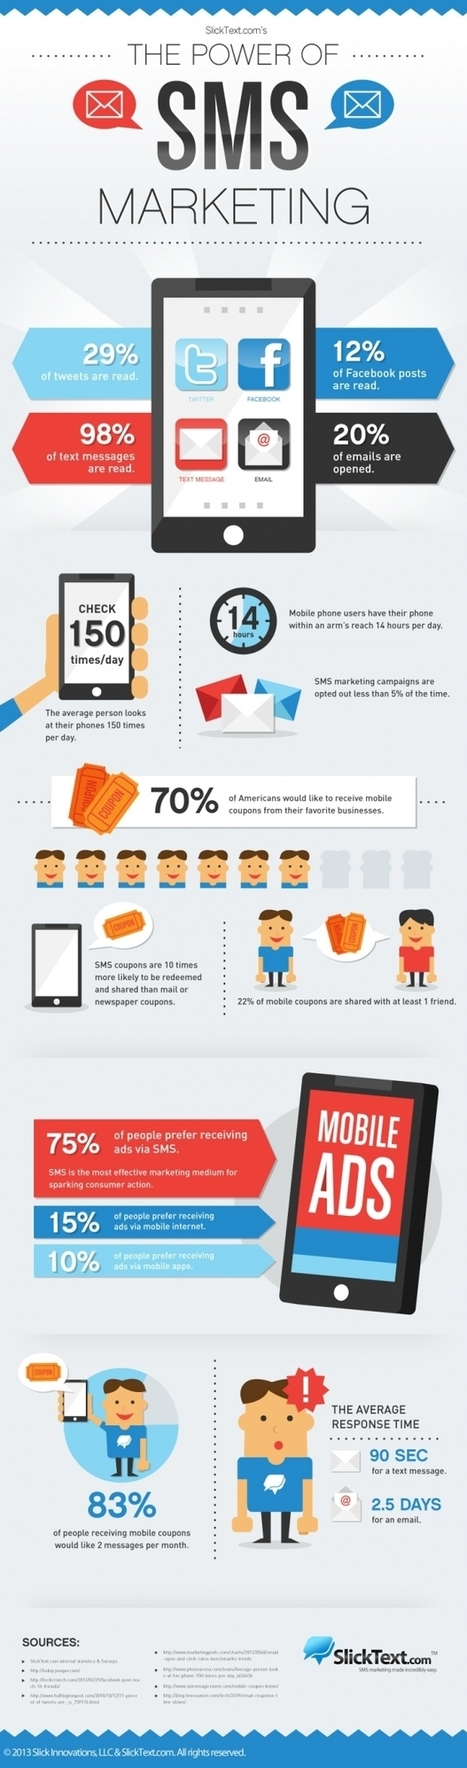 42bis »[Infographic] De kracht van SMS marketing » Door: Angeline ... | Marketing | Scoop.it